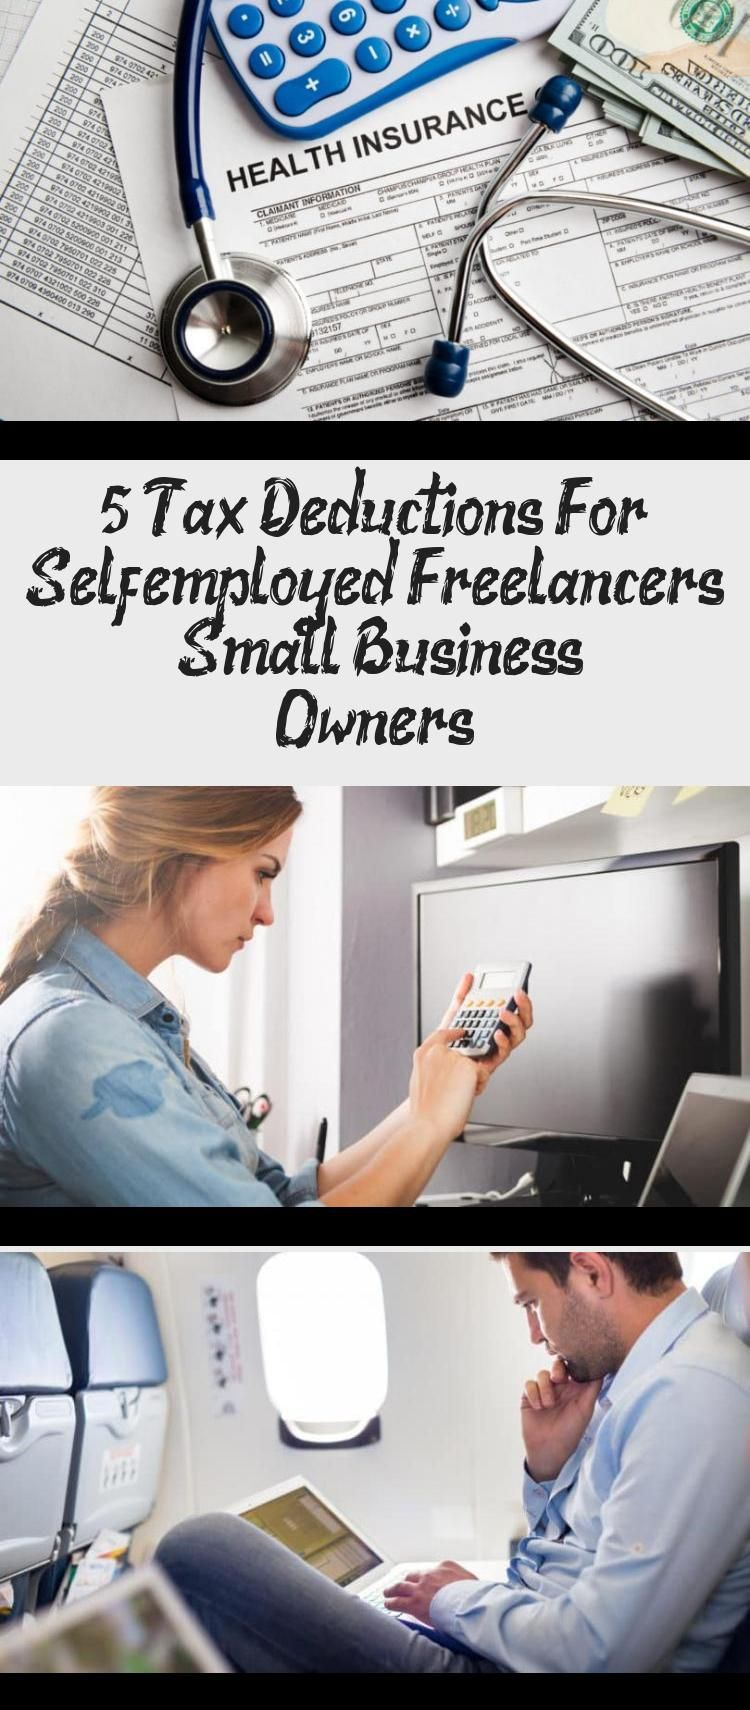 5 Tax Deductions For Self Employed Freelancers Small Business